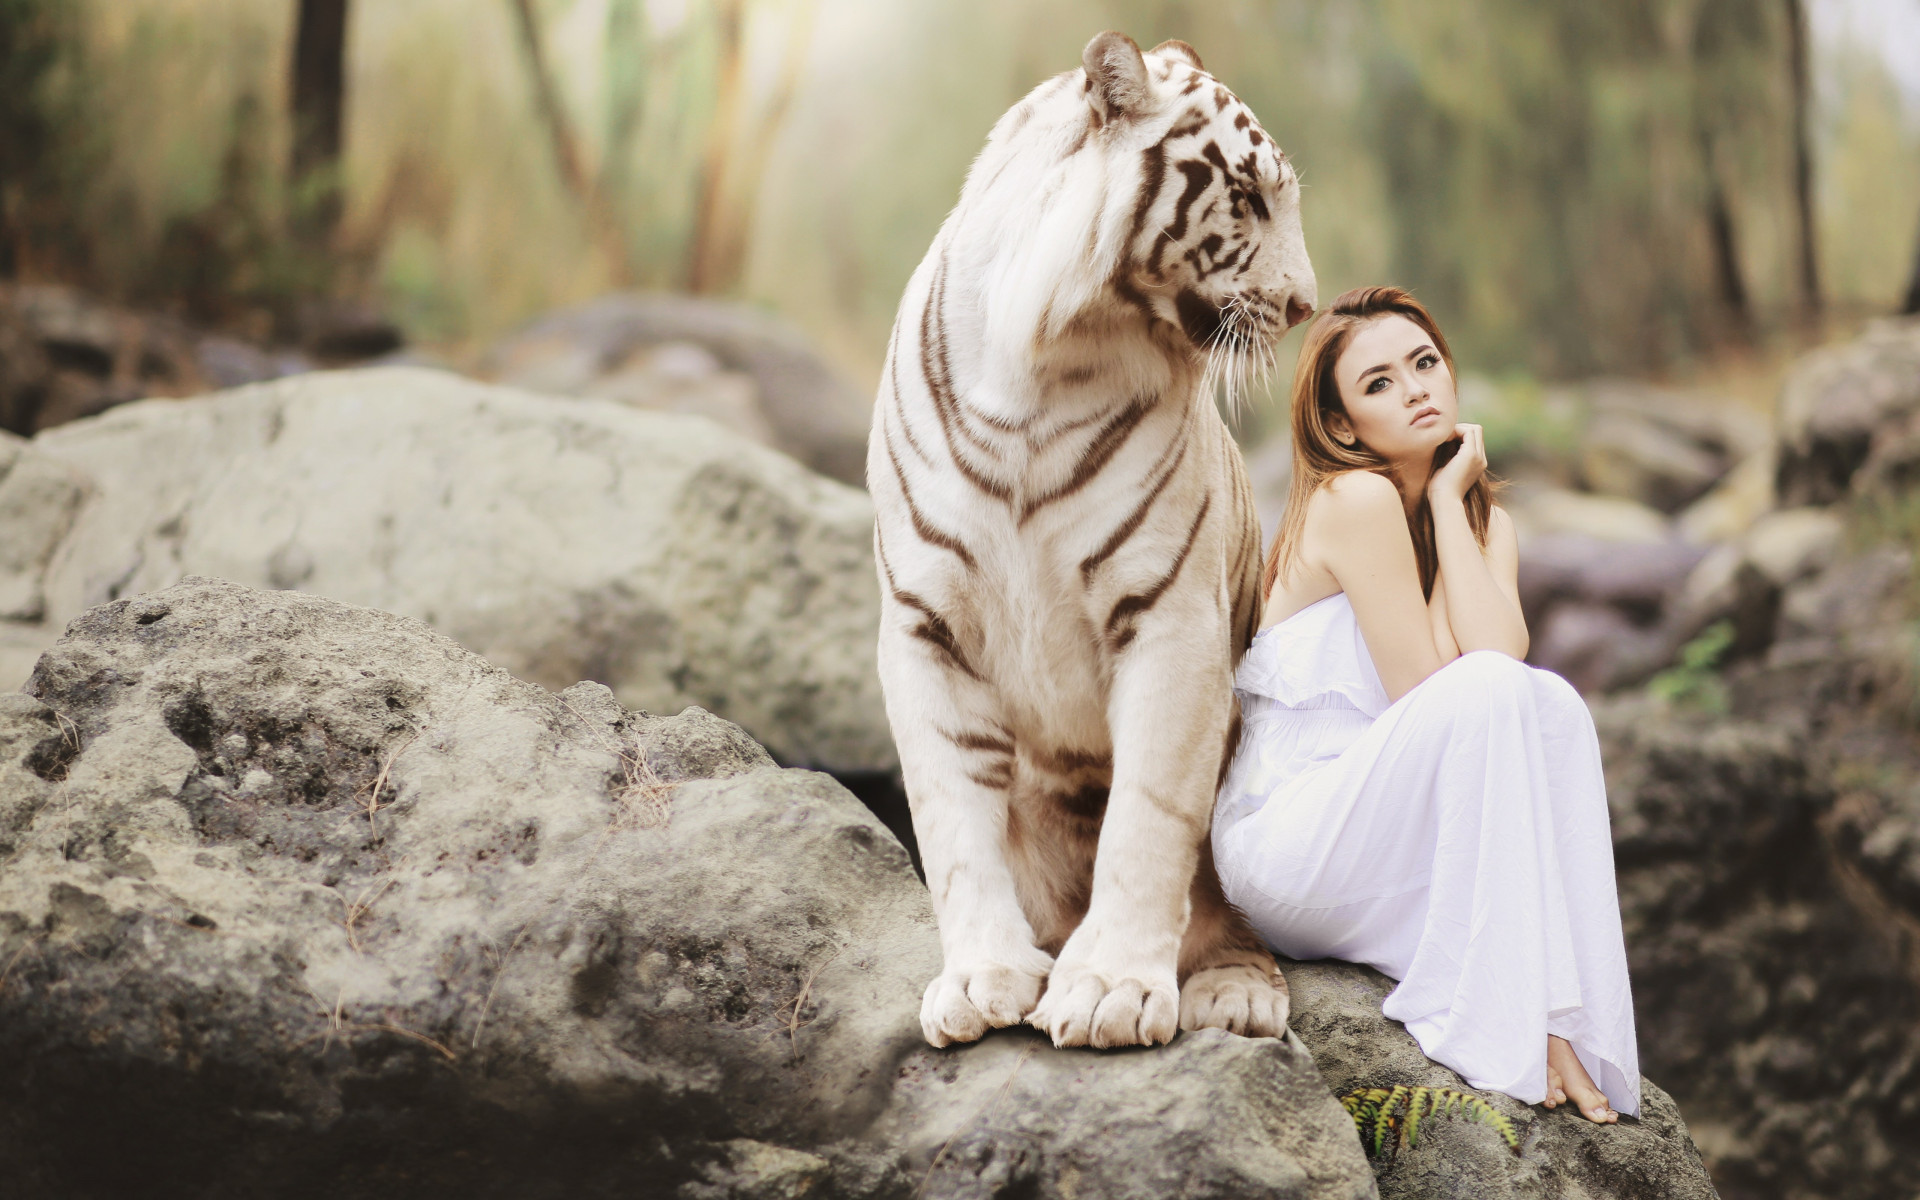 Bengal tiger and a beautiful girl | 1920x1200 wallpaper